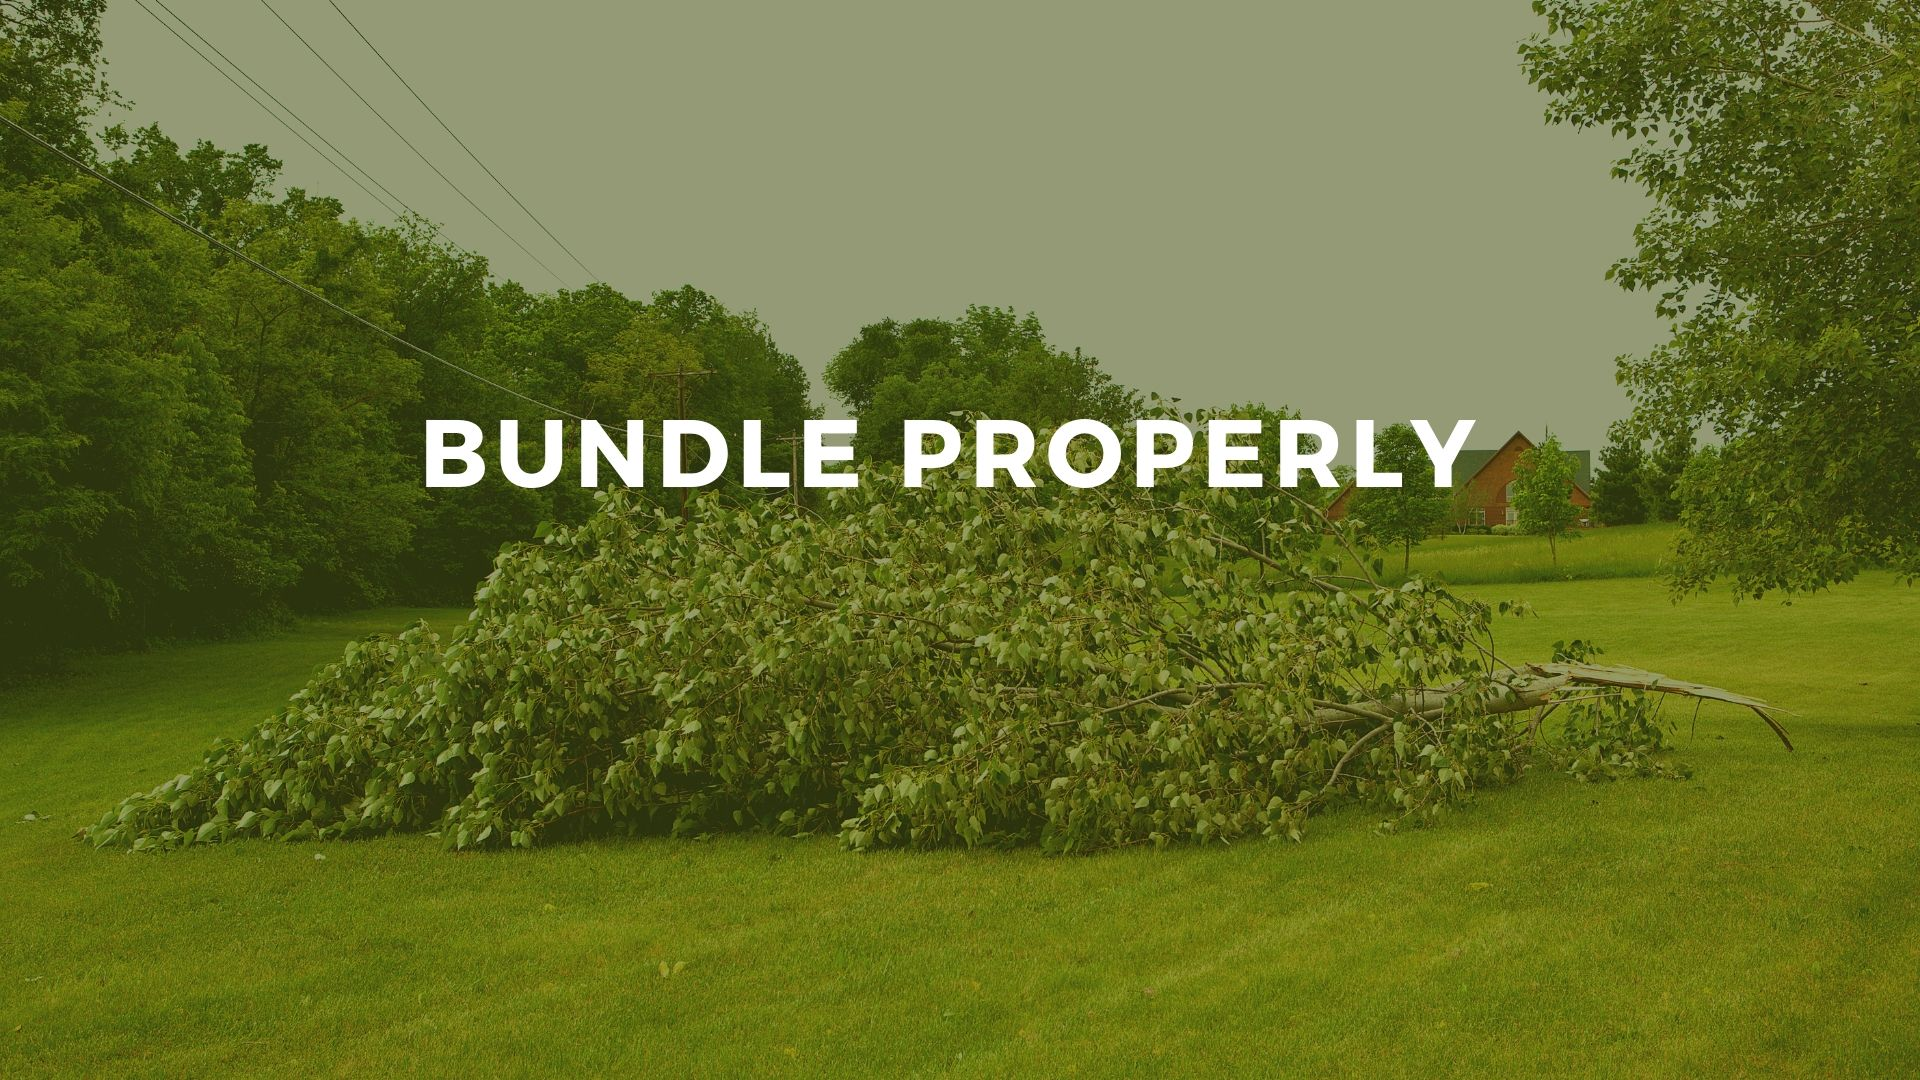 Hurst strong winds tree limb bundle requirements for pickup by Republic Services